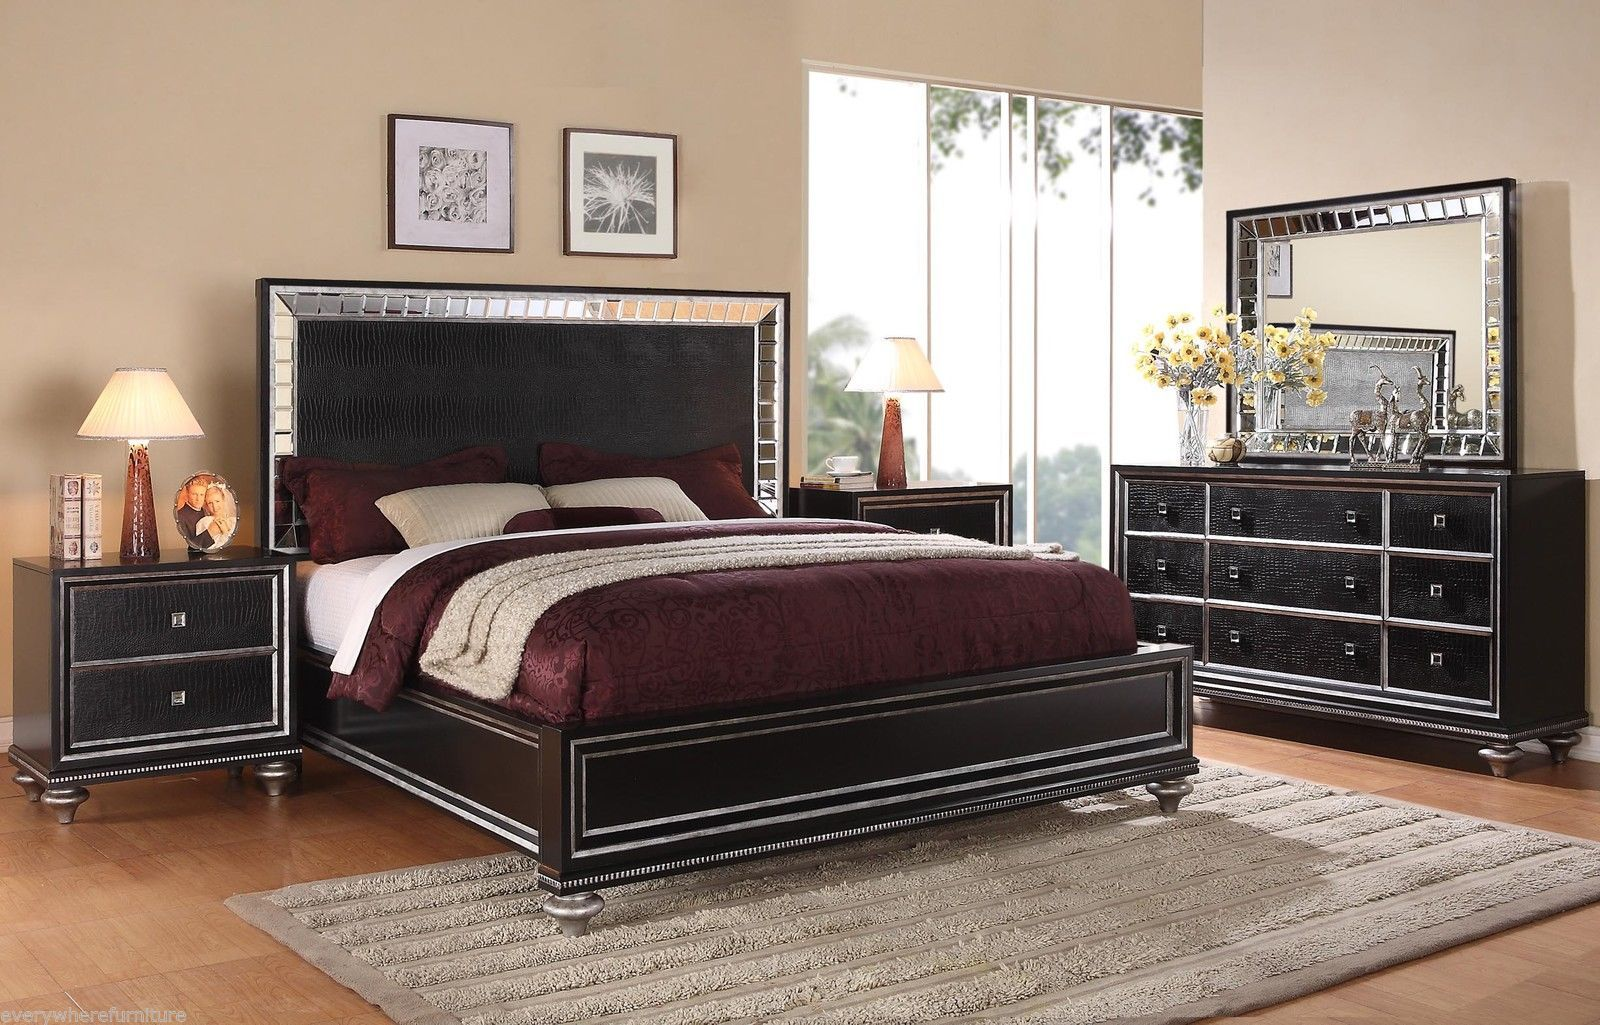 Wynwood Glam Black Mirrored King Size Mansion Bed Bedroom Furniture Hollywood Contemporary Bedroom Furniture Sets King Size Bedroom Sets Bedroom Sets